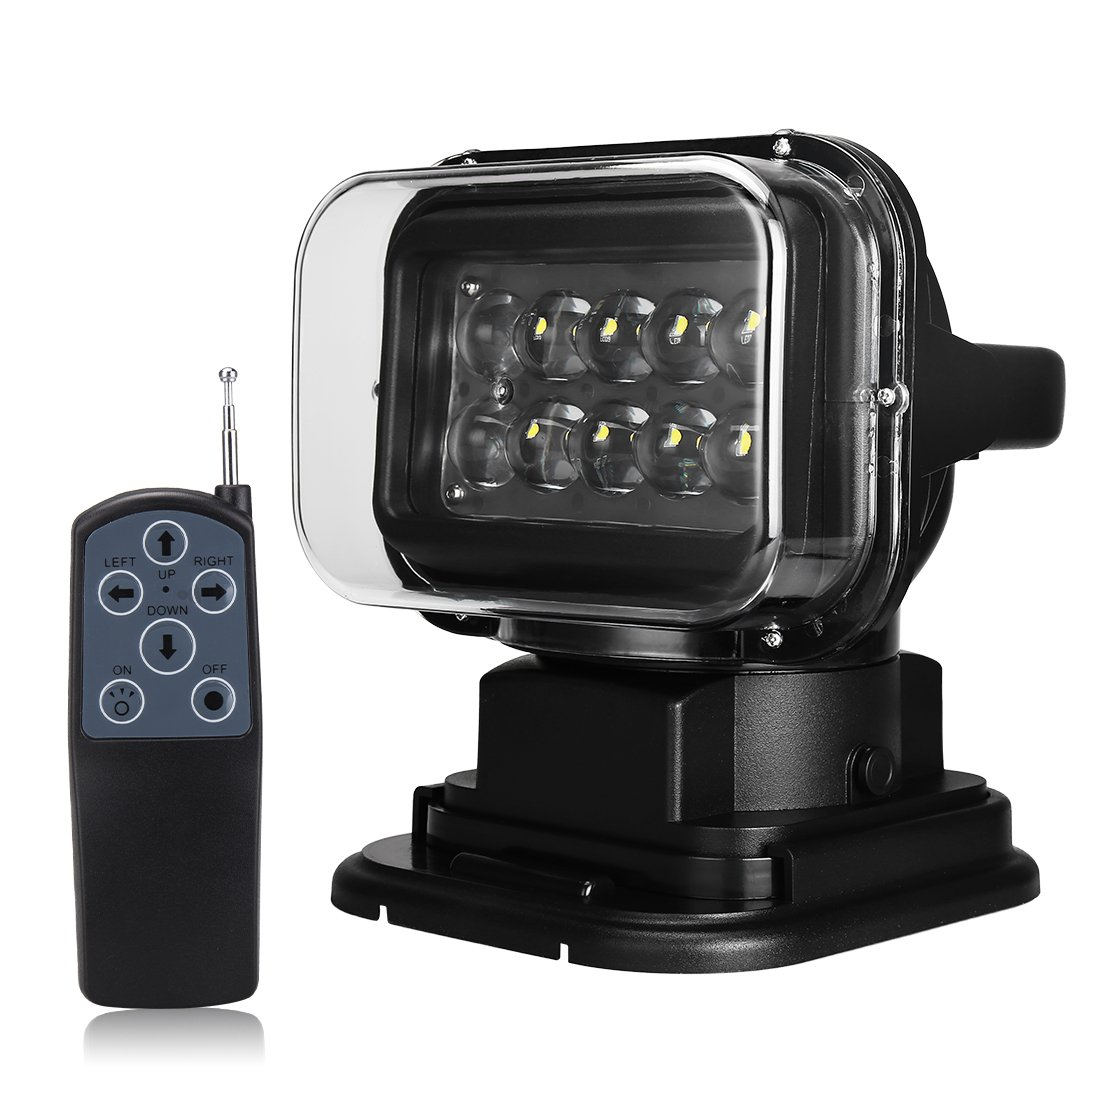 SUPAREE 1pcs Black 12v 24v 50w 360 Cree LED Rotating Remote Control Work Light Spot for SUV Boat Home Security Farm Field Protection Emergency Lighting Garden Etc by SUPAREE